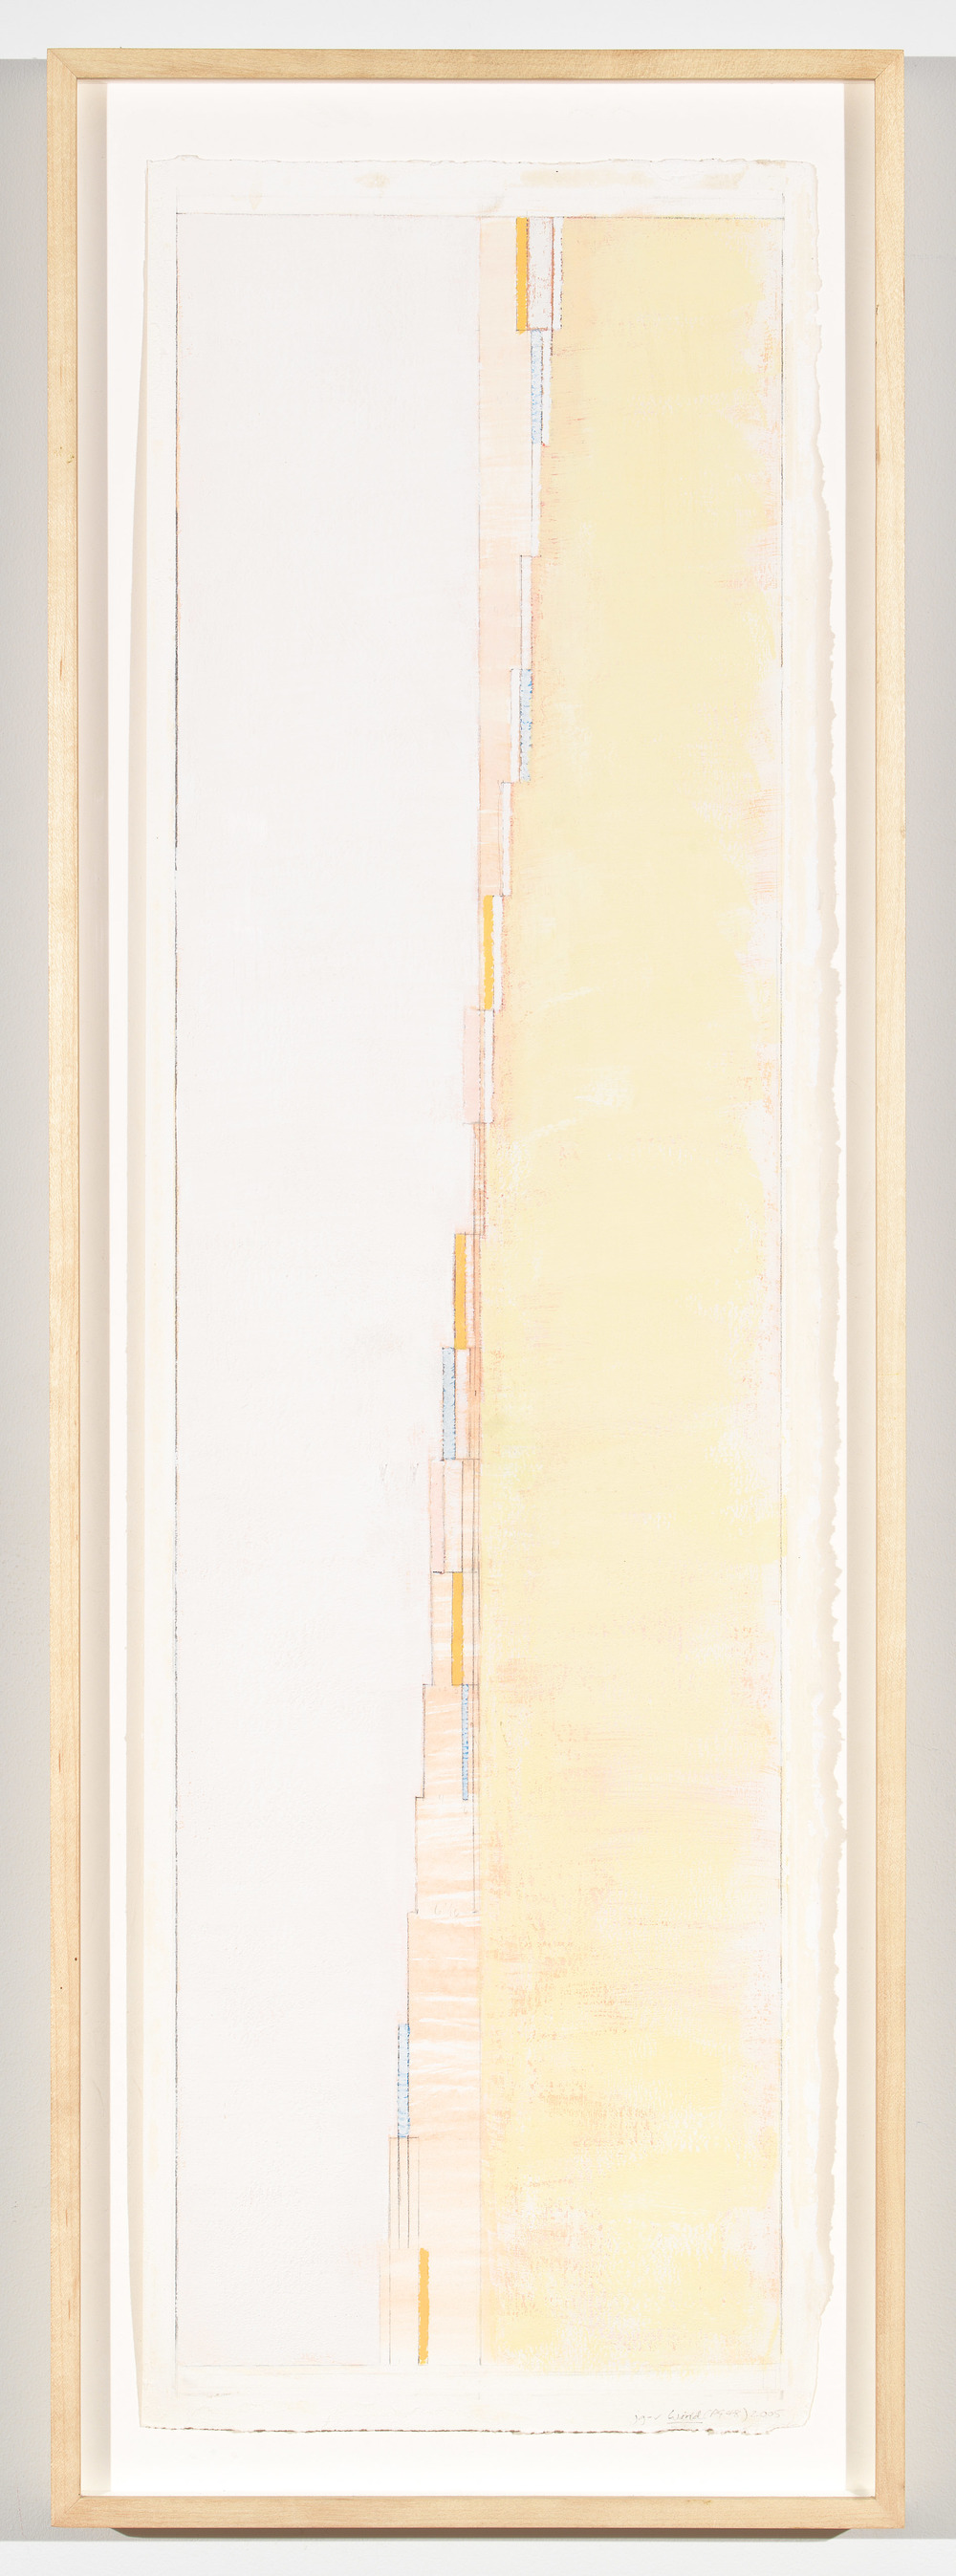 "Wind (PG 52), 2005, 28 ½"" x 8"" (image), 30"" x 8 6/8"" (paper)"